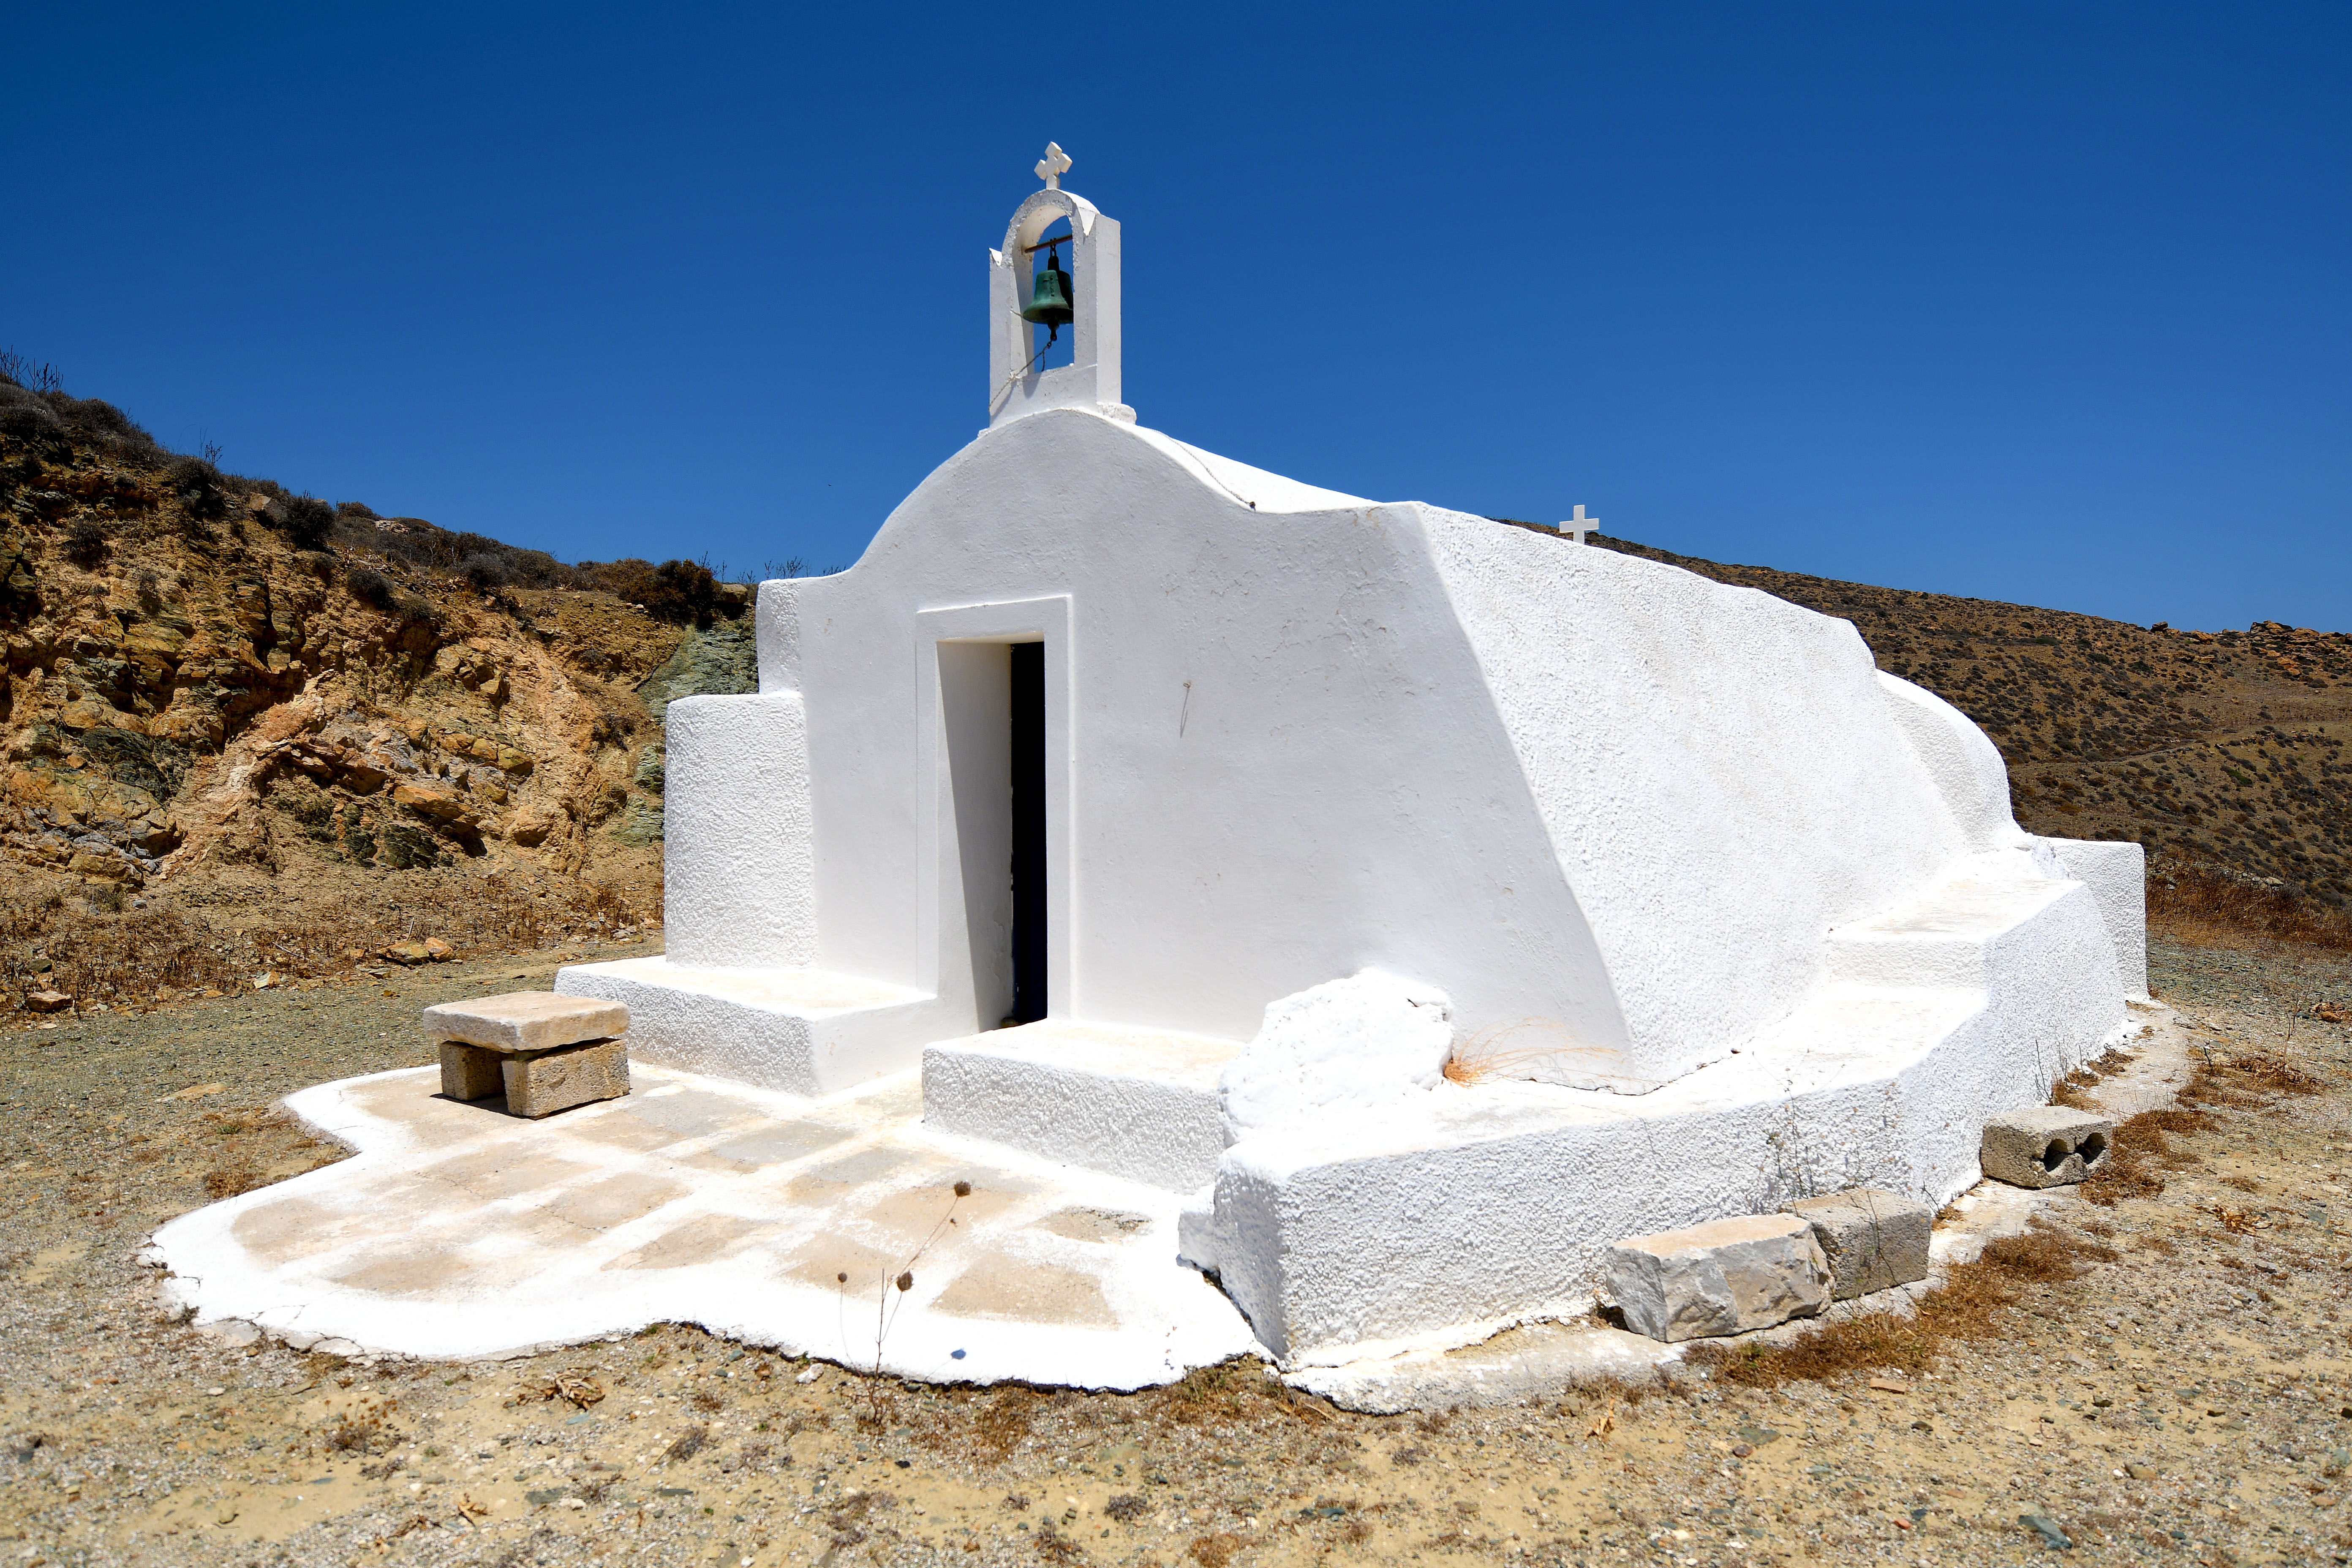 ANJCI ALL OVER | Visiting Anafi A Greek Island Unknown to Many